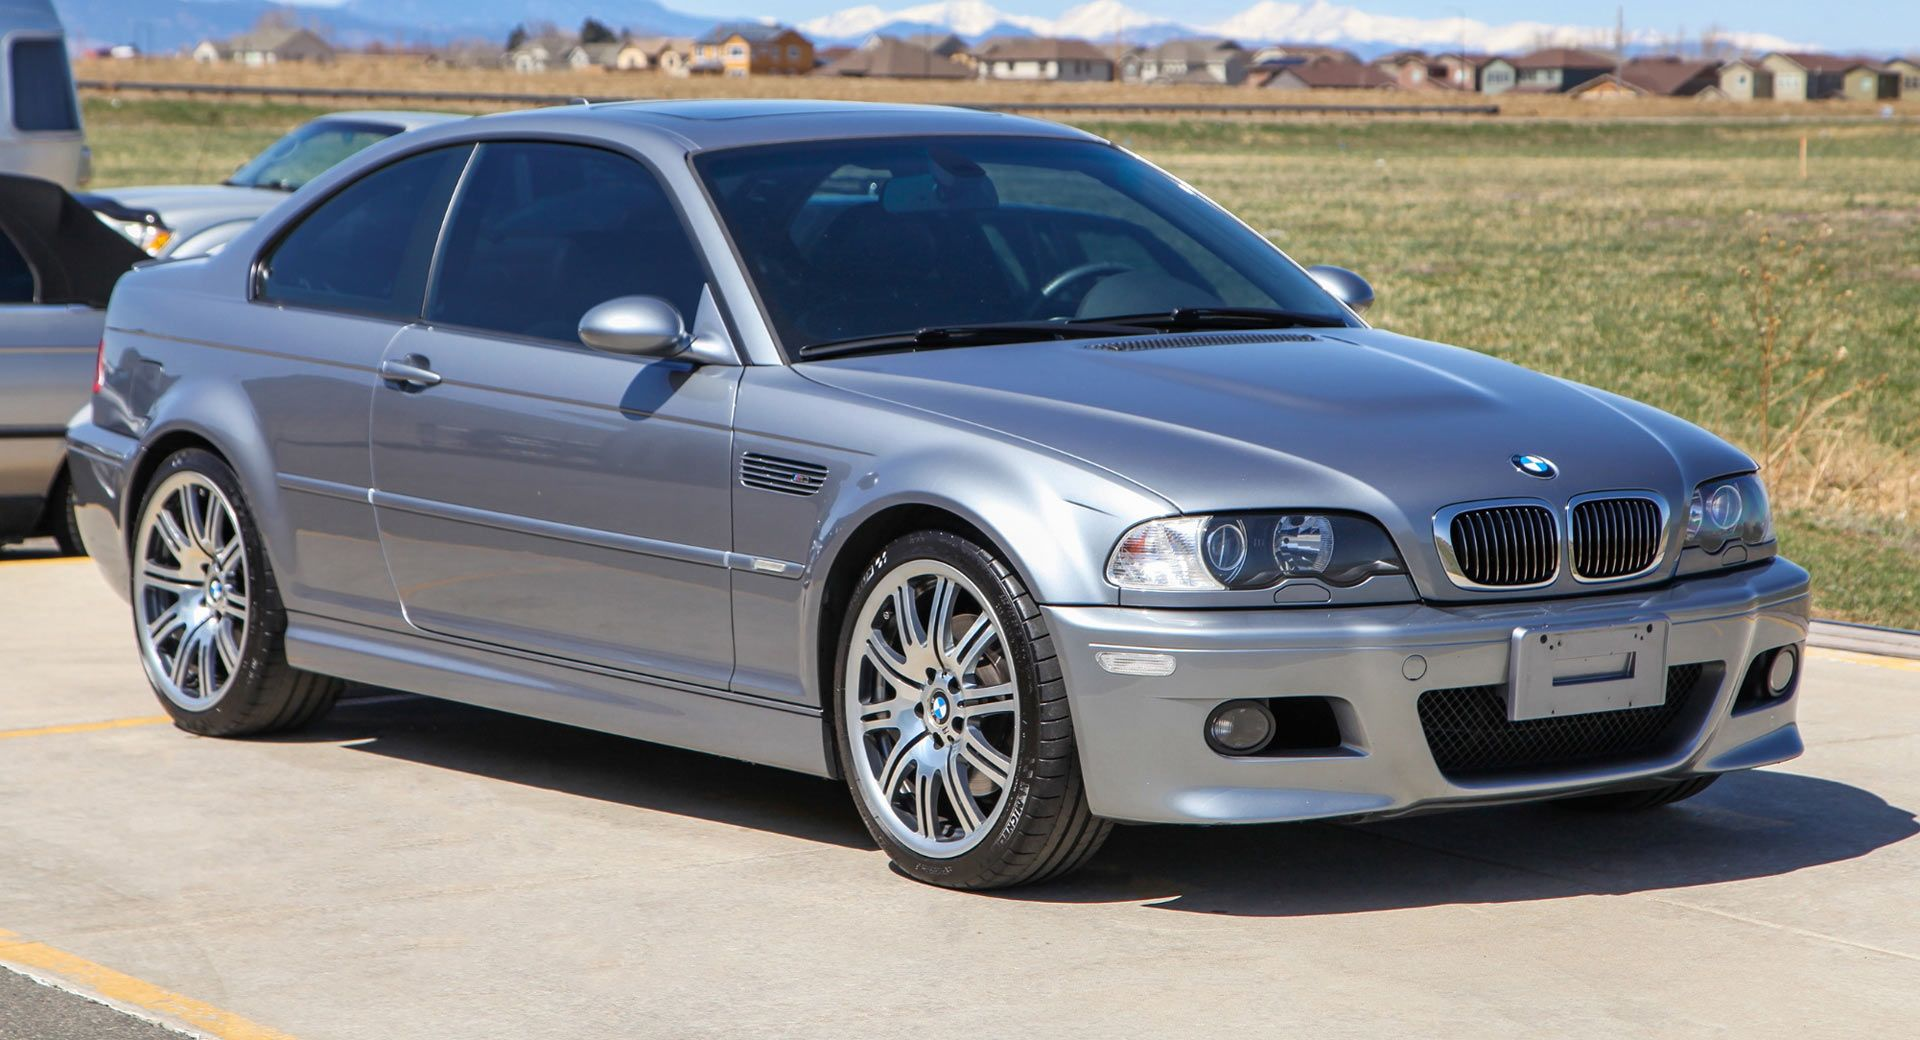 six speed bmw e46 m3 is for the driving enthusiast carscoops. Black Bedroom Furniture Sets. Home Design Ideas